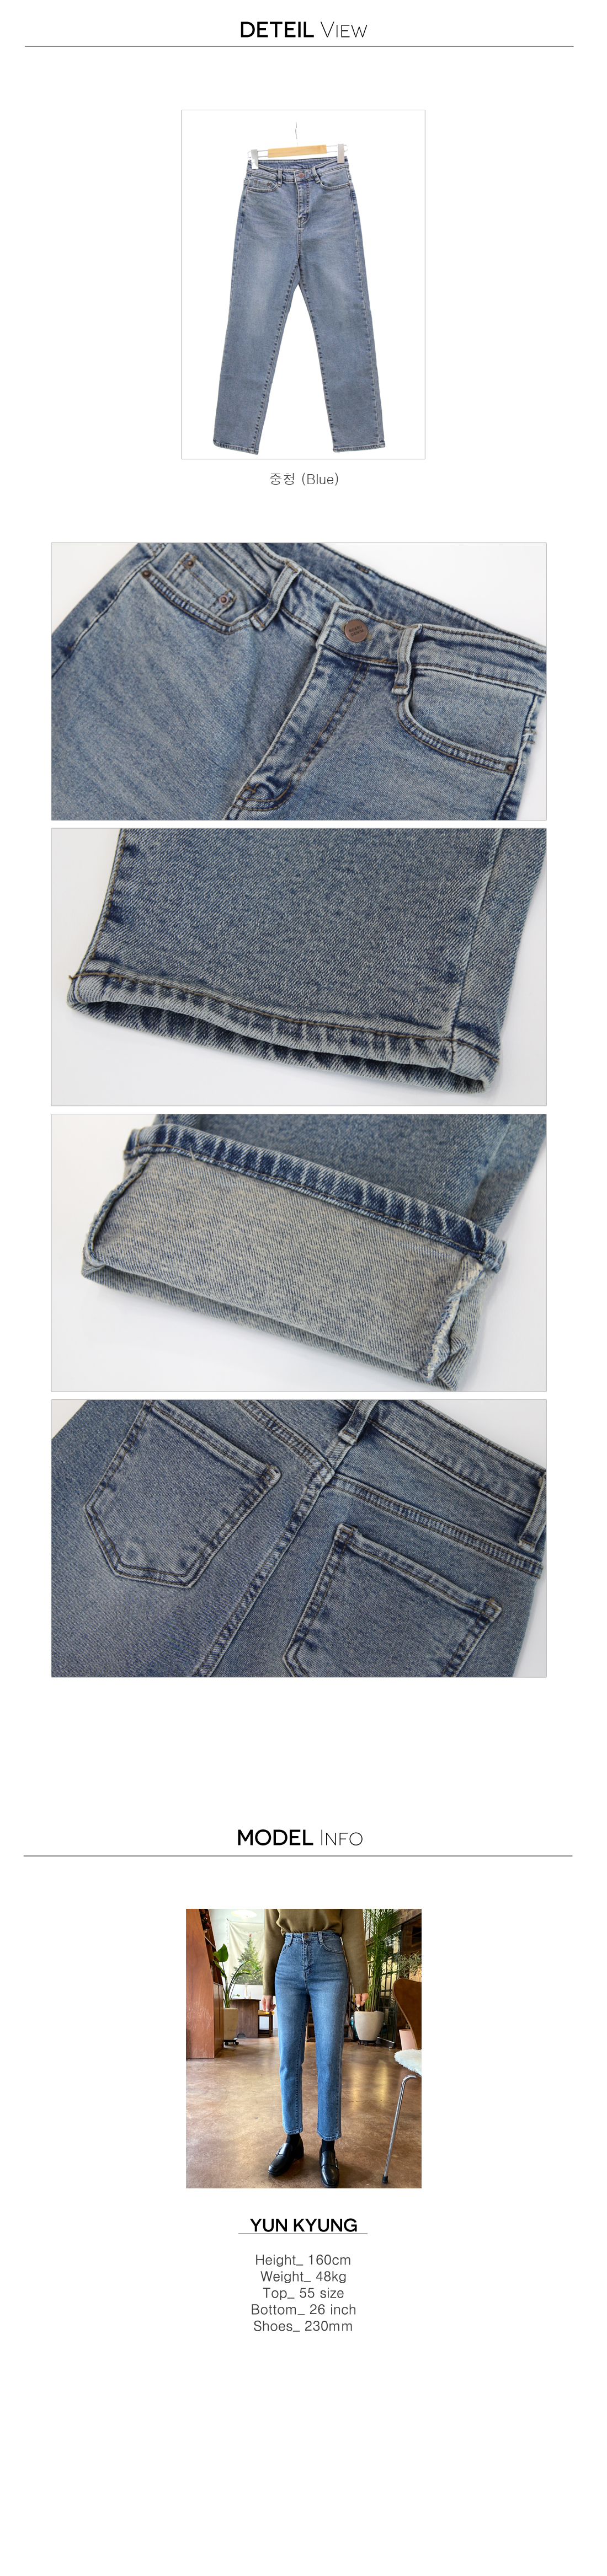 Melo brushed high waist straight jeans